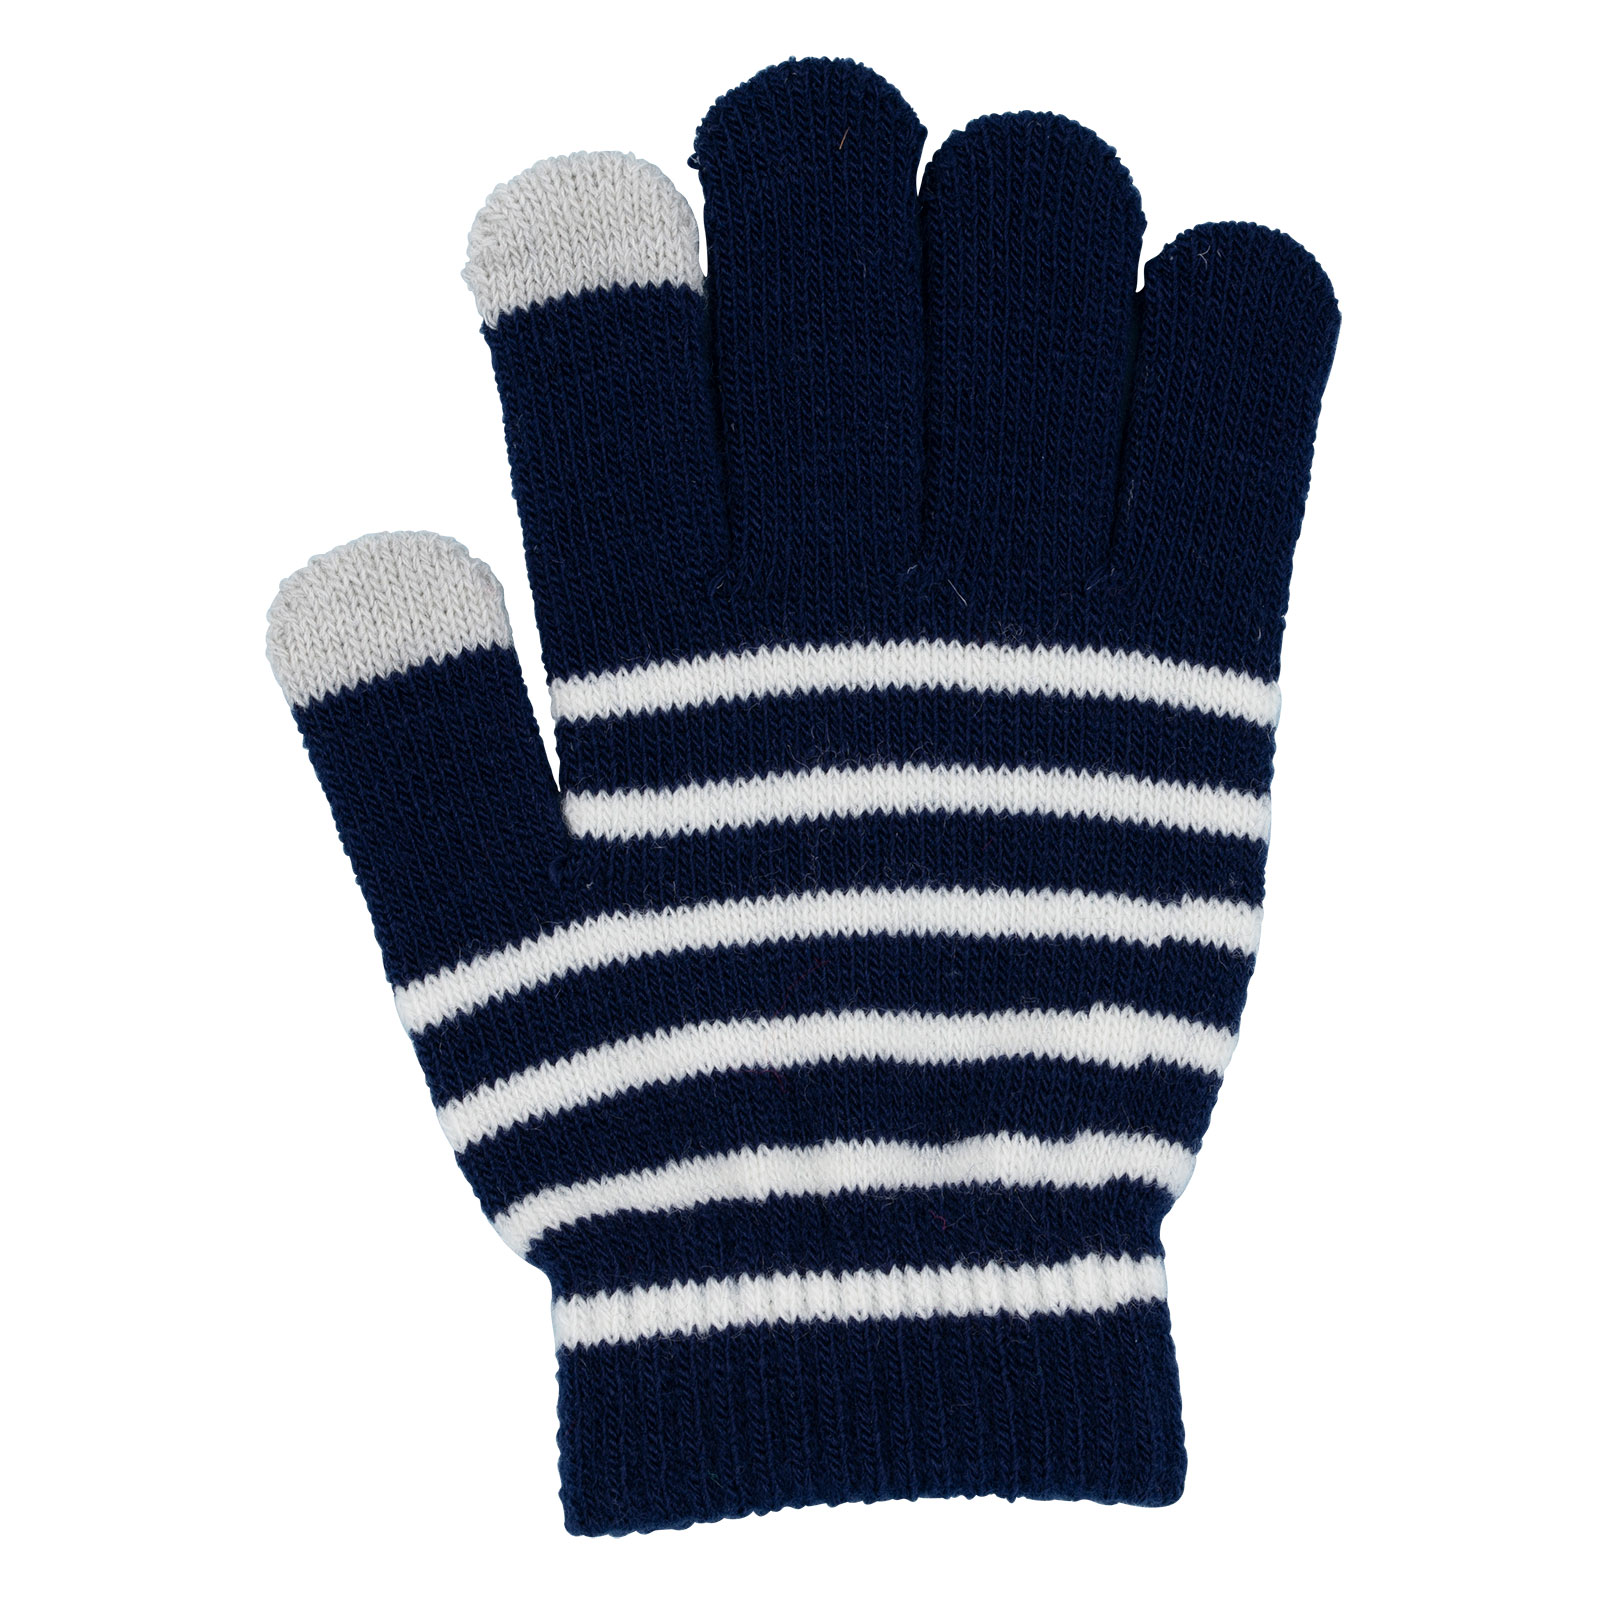 Touch gloves barn -   blå / vit